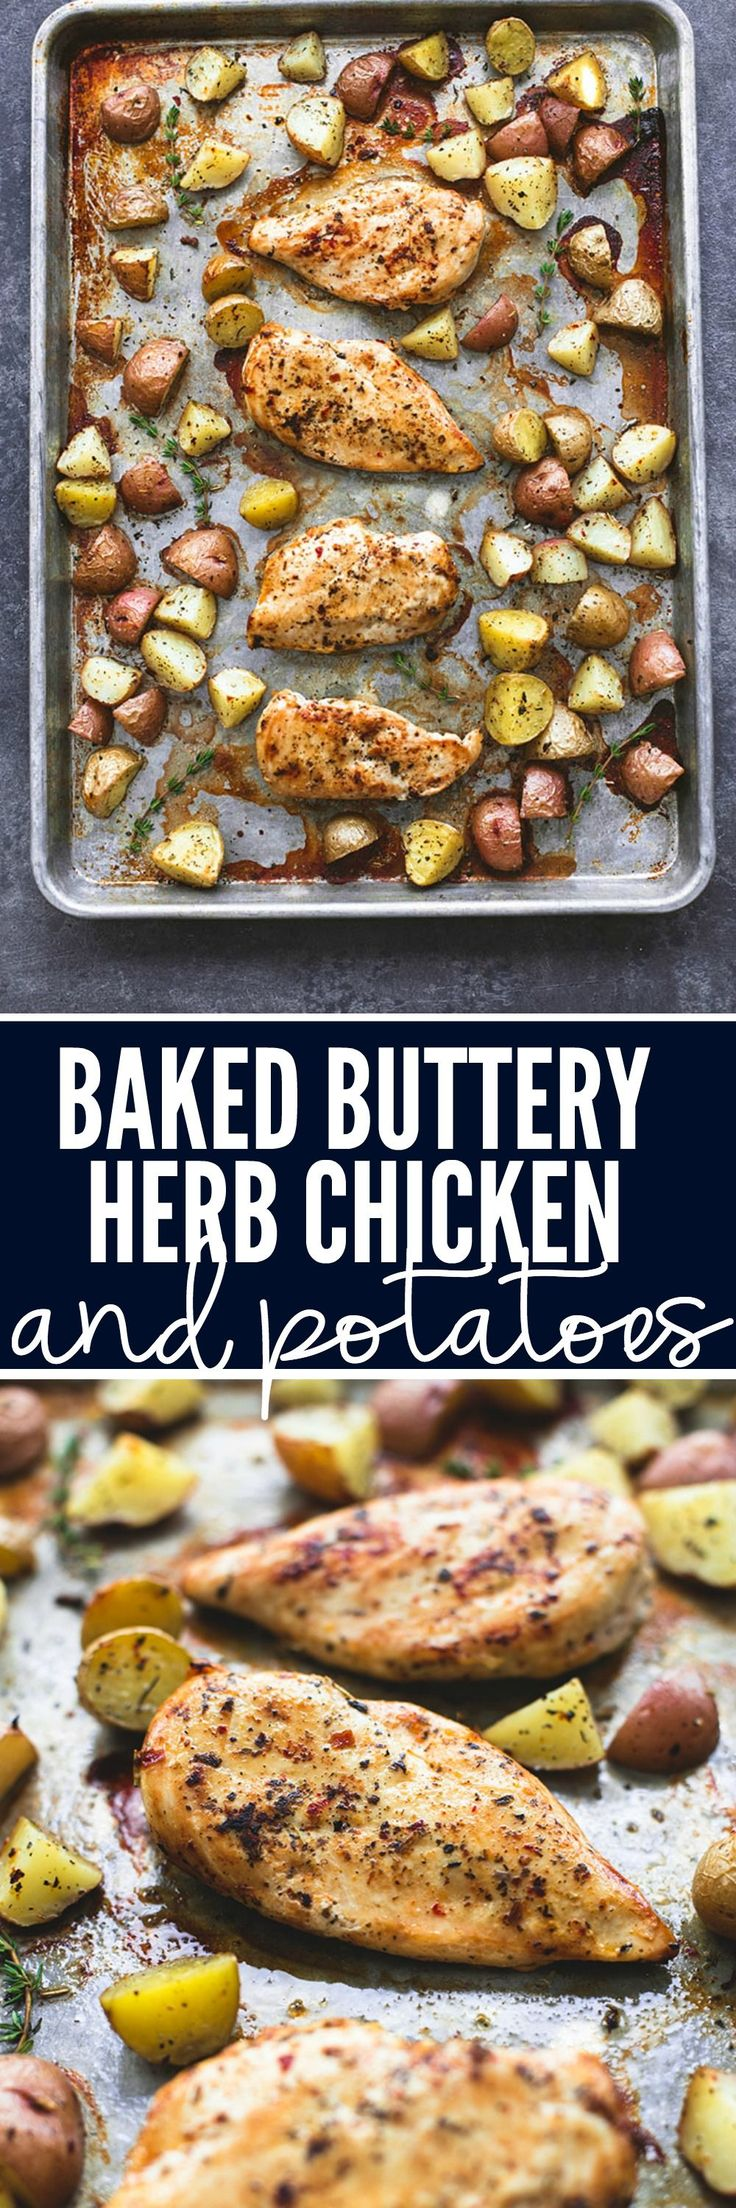 Baked Buttery Herb Chicken and Potatoes requires just a few ingredients and is packed with amazing flavor and ready in just 30 minutes!